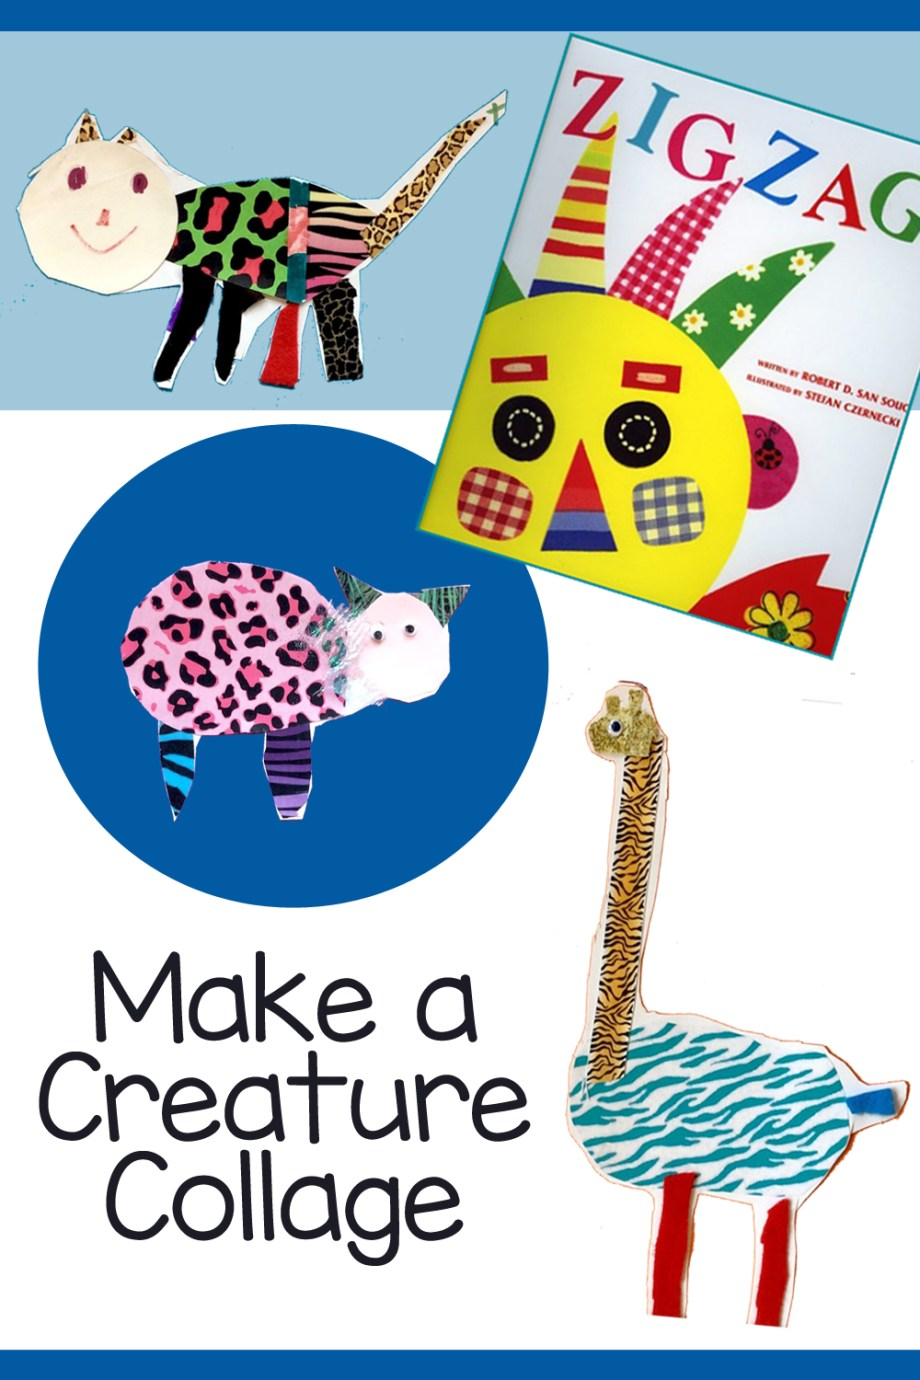 make your own creature with fabric and paper scraps art is basic